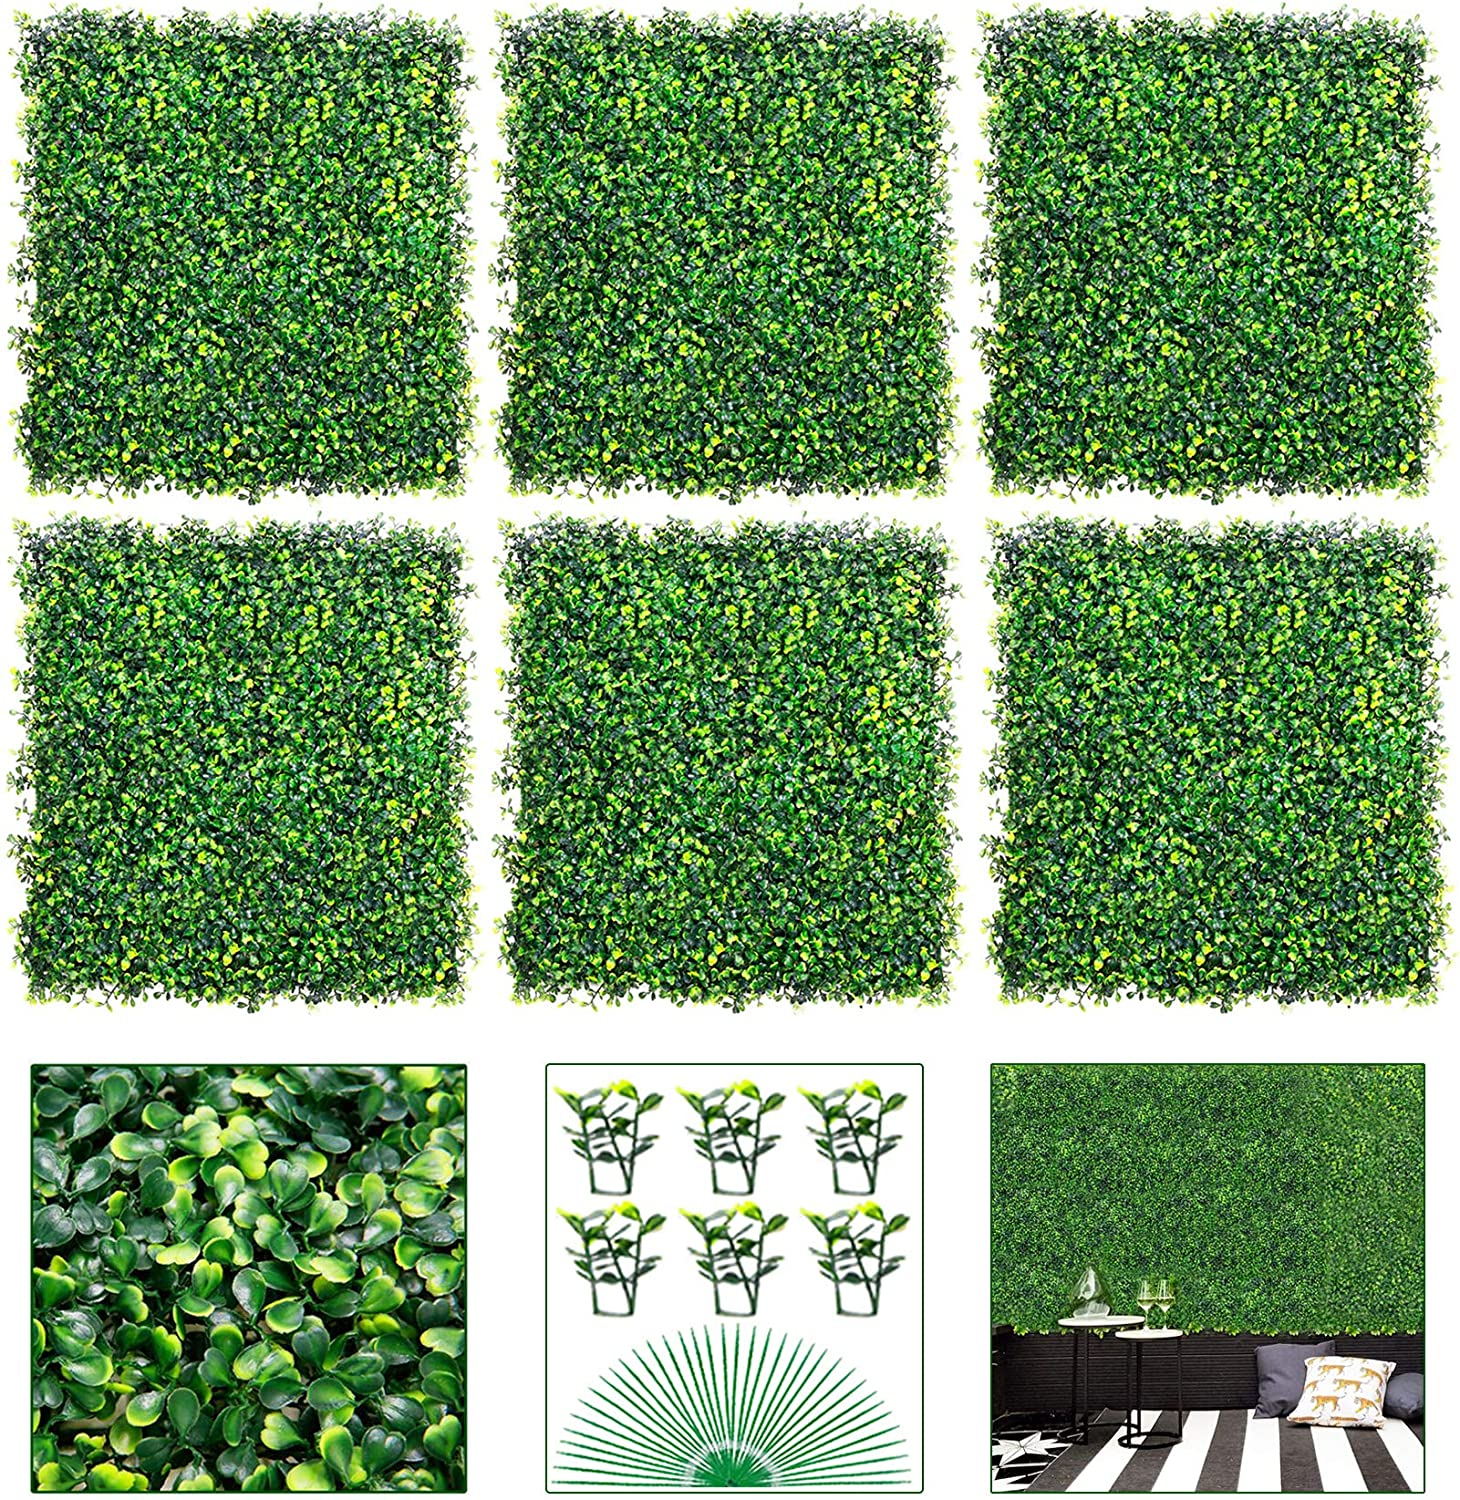 """VegasDoggy 6 PCS 20""""x20"""" 16.67 Square Artificial Boxwood Grass Backdrop Panels Topiary Hedge Plant, UV Protected Privacy Hedge Screen Faux Boxwood for Outdoor, Indoor, Garden, Fence, Backyard"""